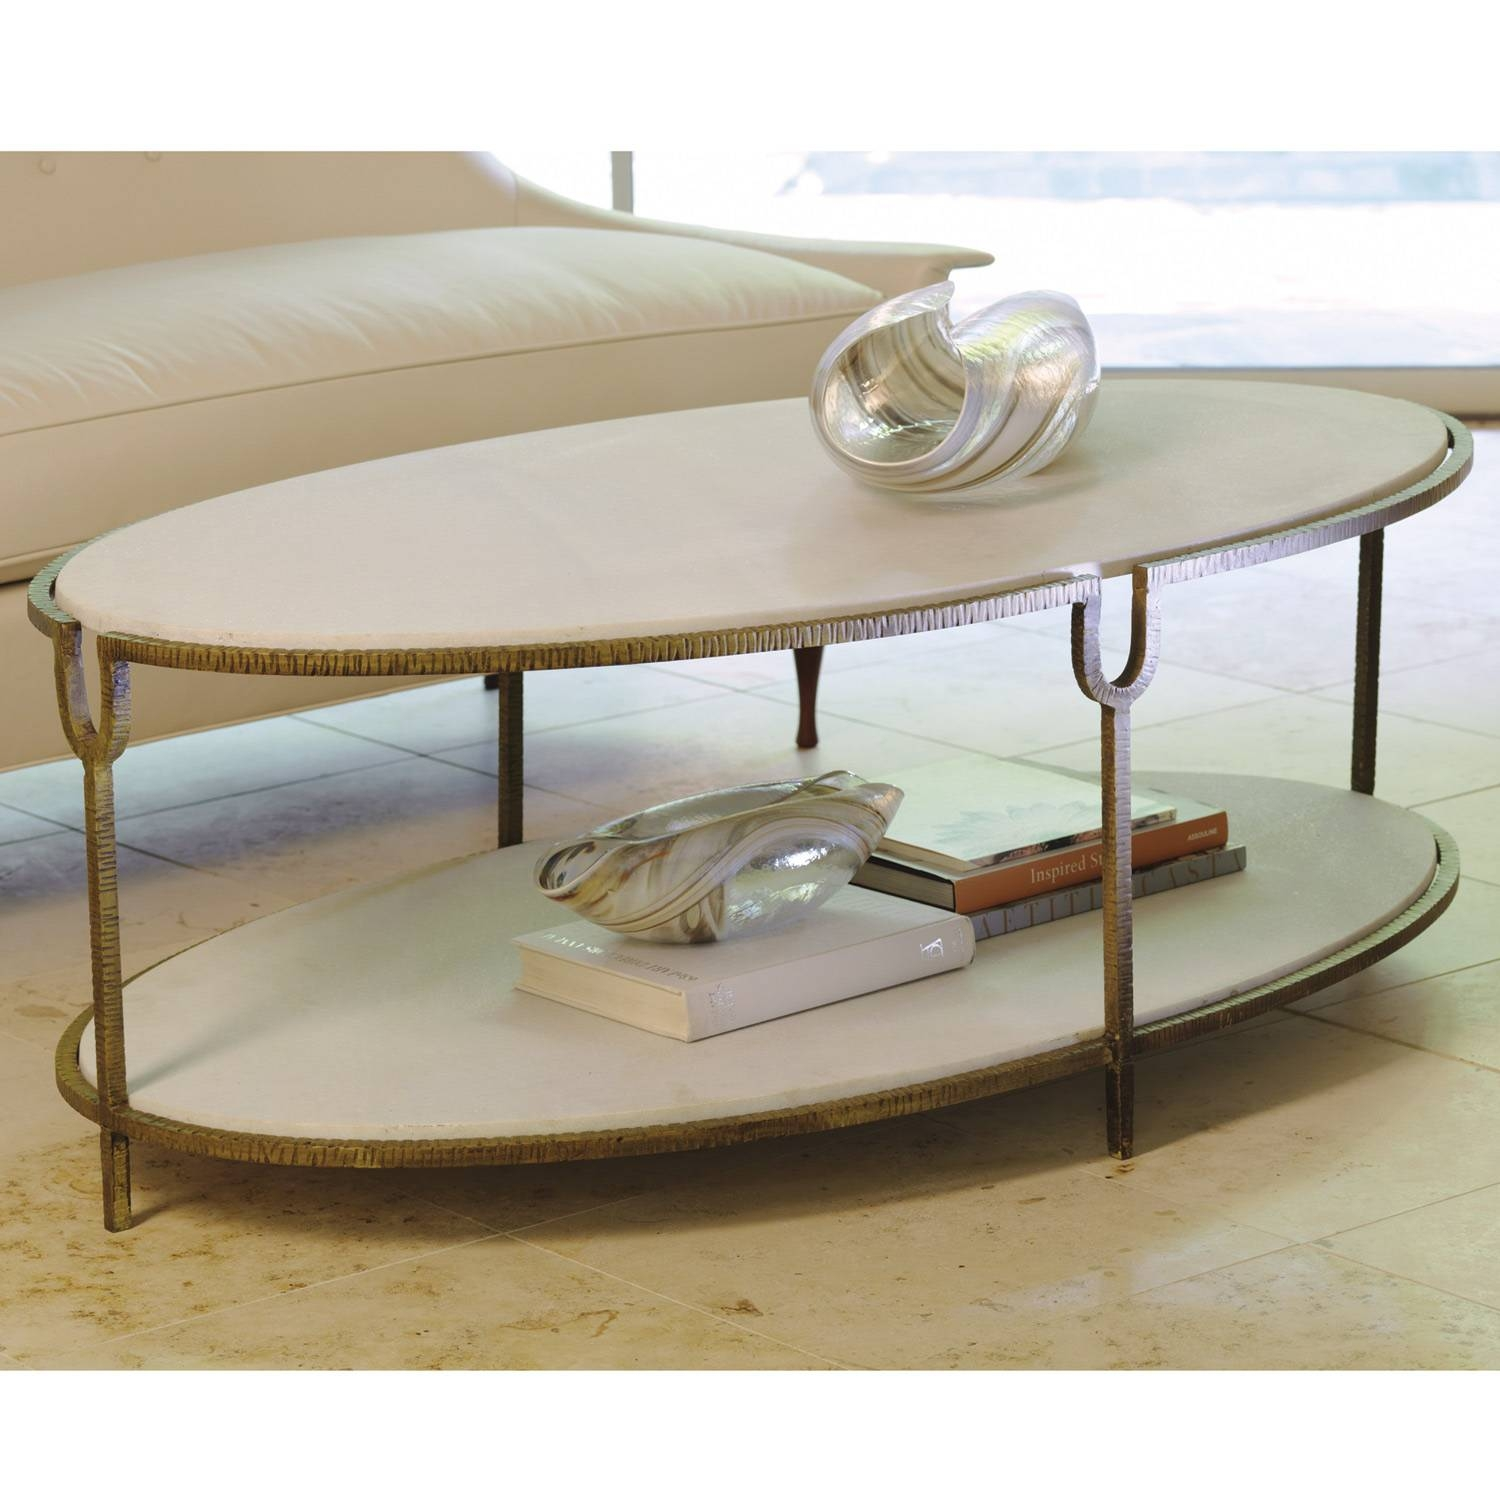 White Oval Coffee Table : Decor Your Living Room In Style With pertaining to White Oval Coffee Tables (Image 29 of 30)